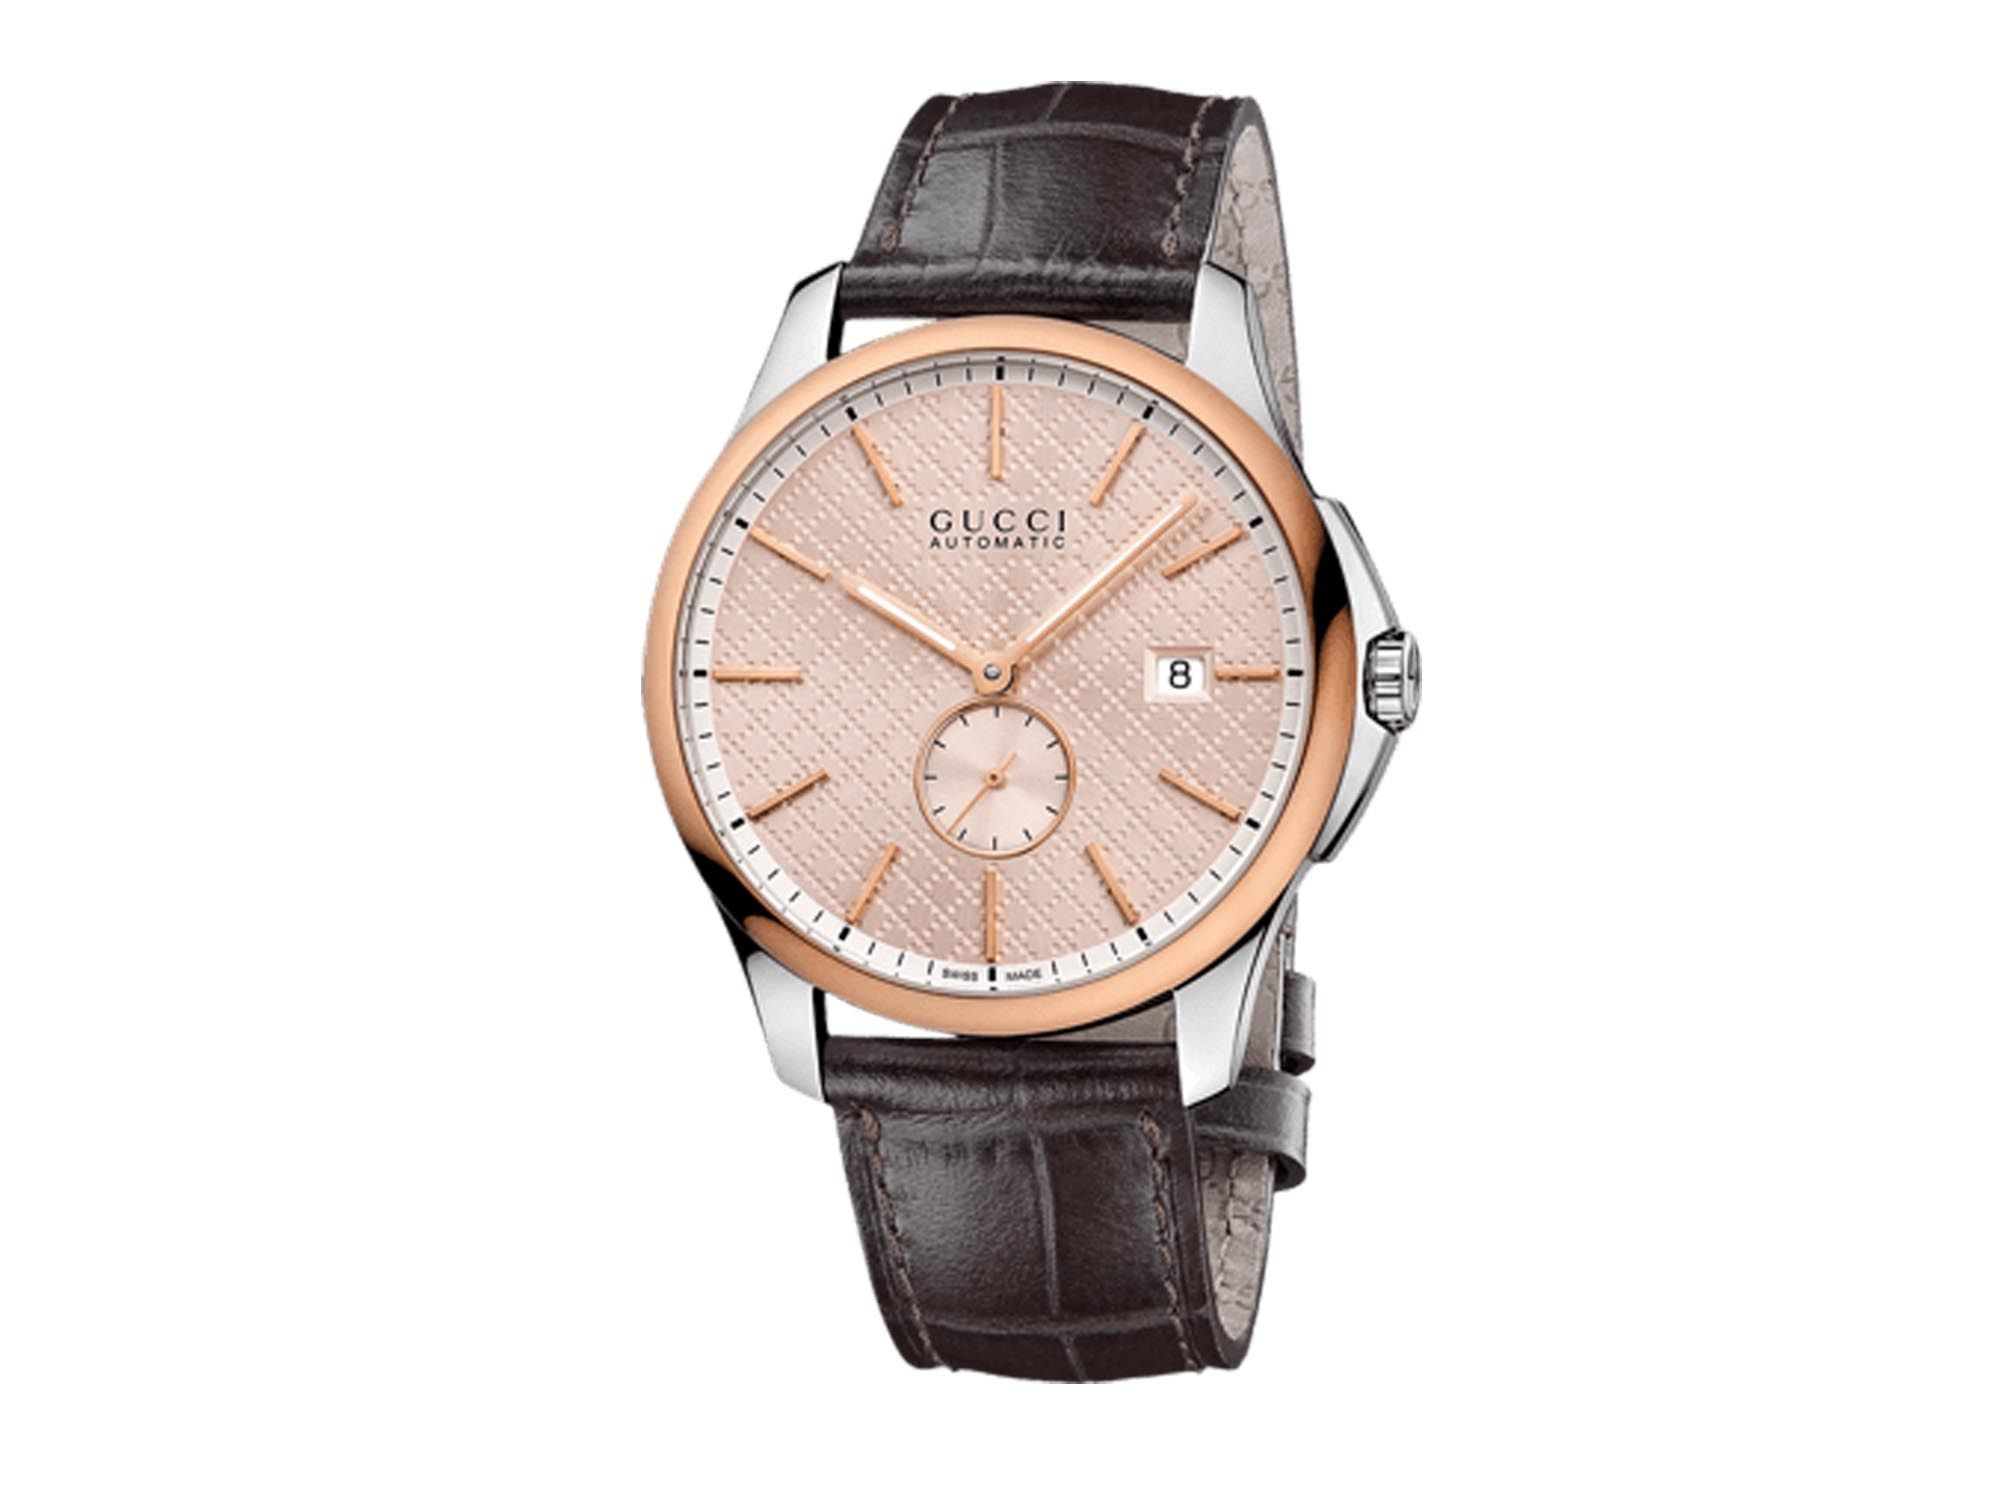 56c40940b43 5 New Watches You ll Want On Your Wrist